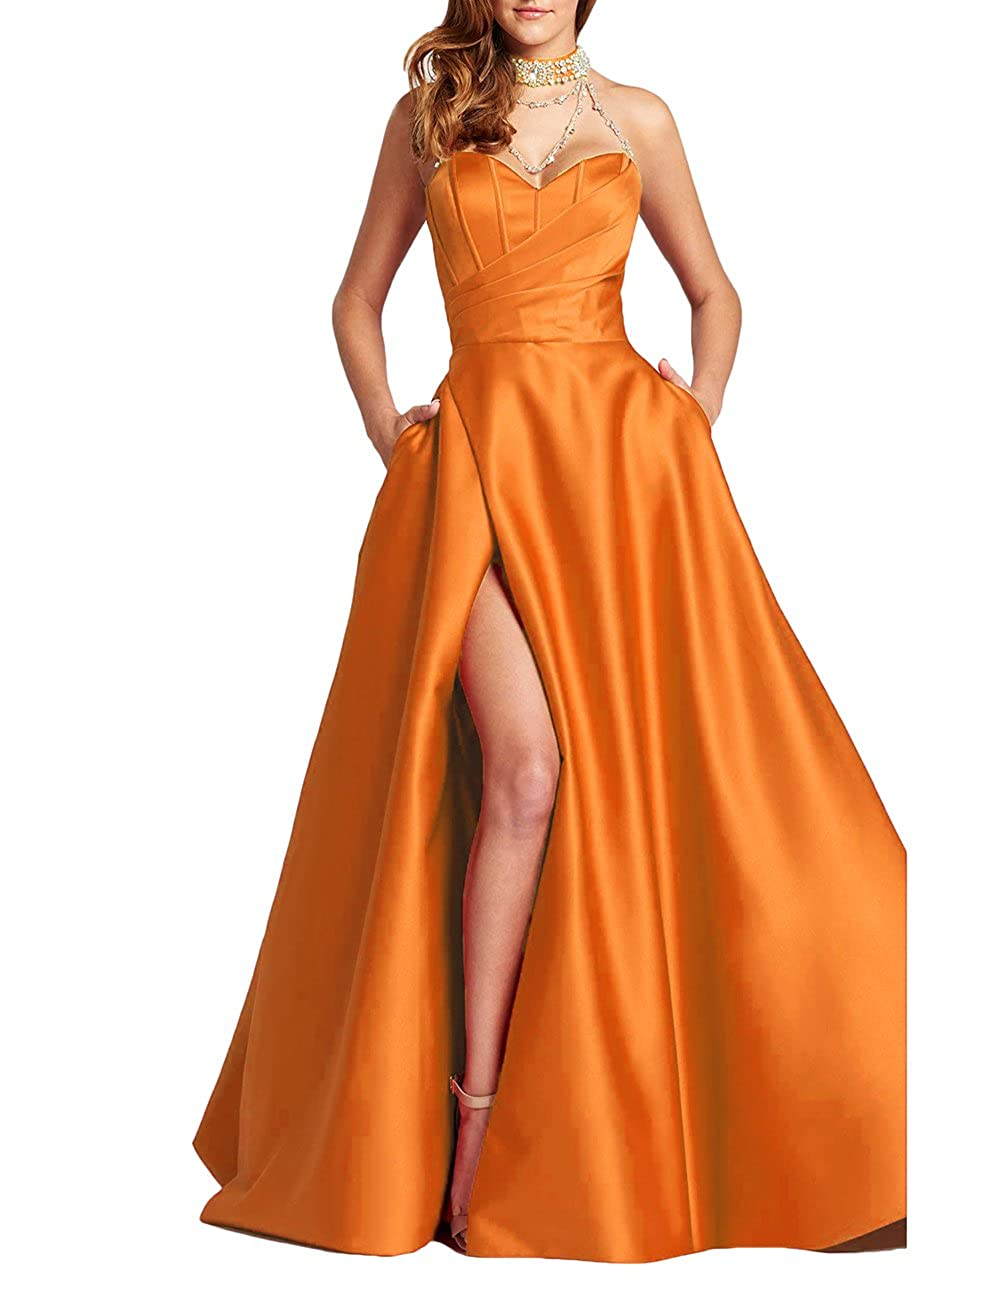 Aorange alilith.Z Sexy Sweetheart Side Slit Beaded Prom Dresses Long Formal Evening Dresses Party Gowns for Women with Pockets